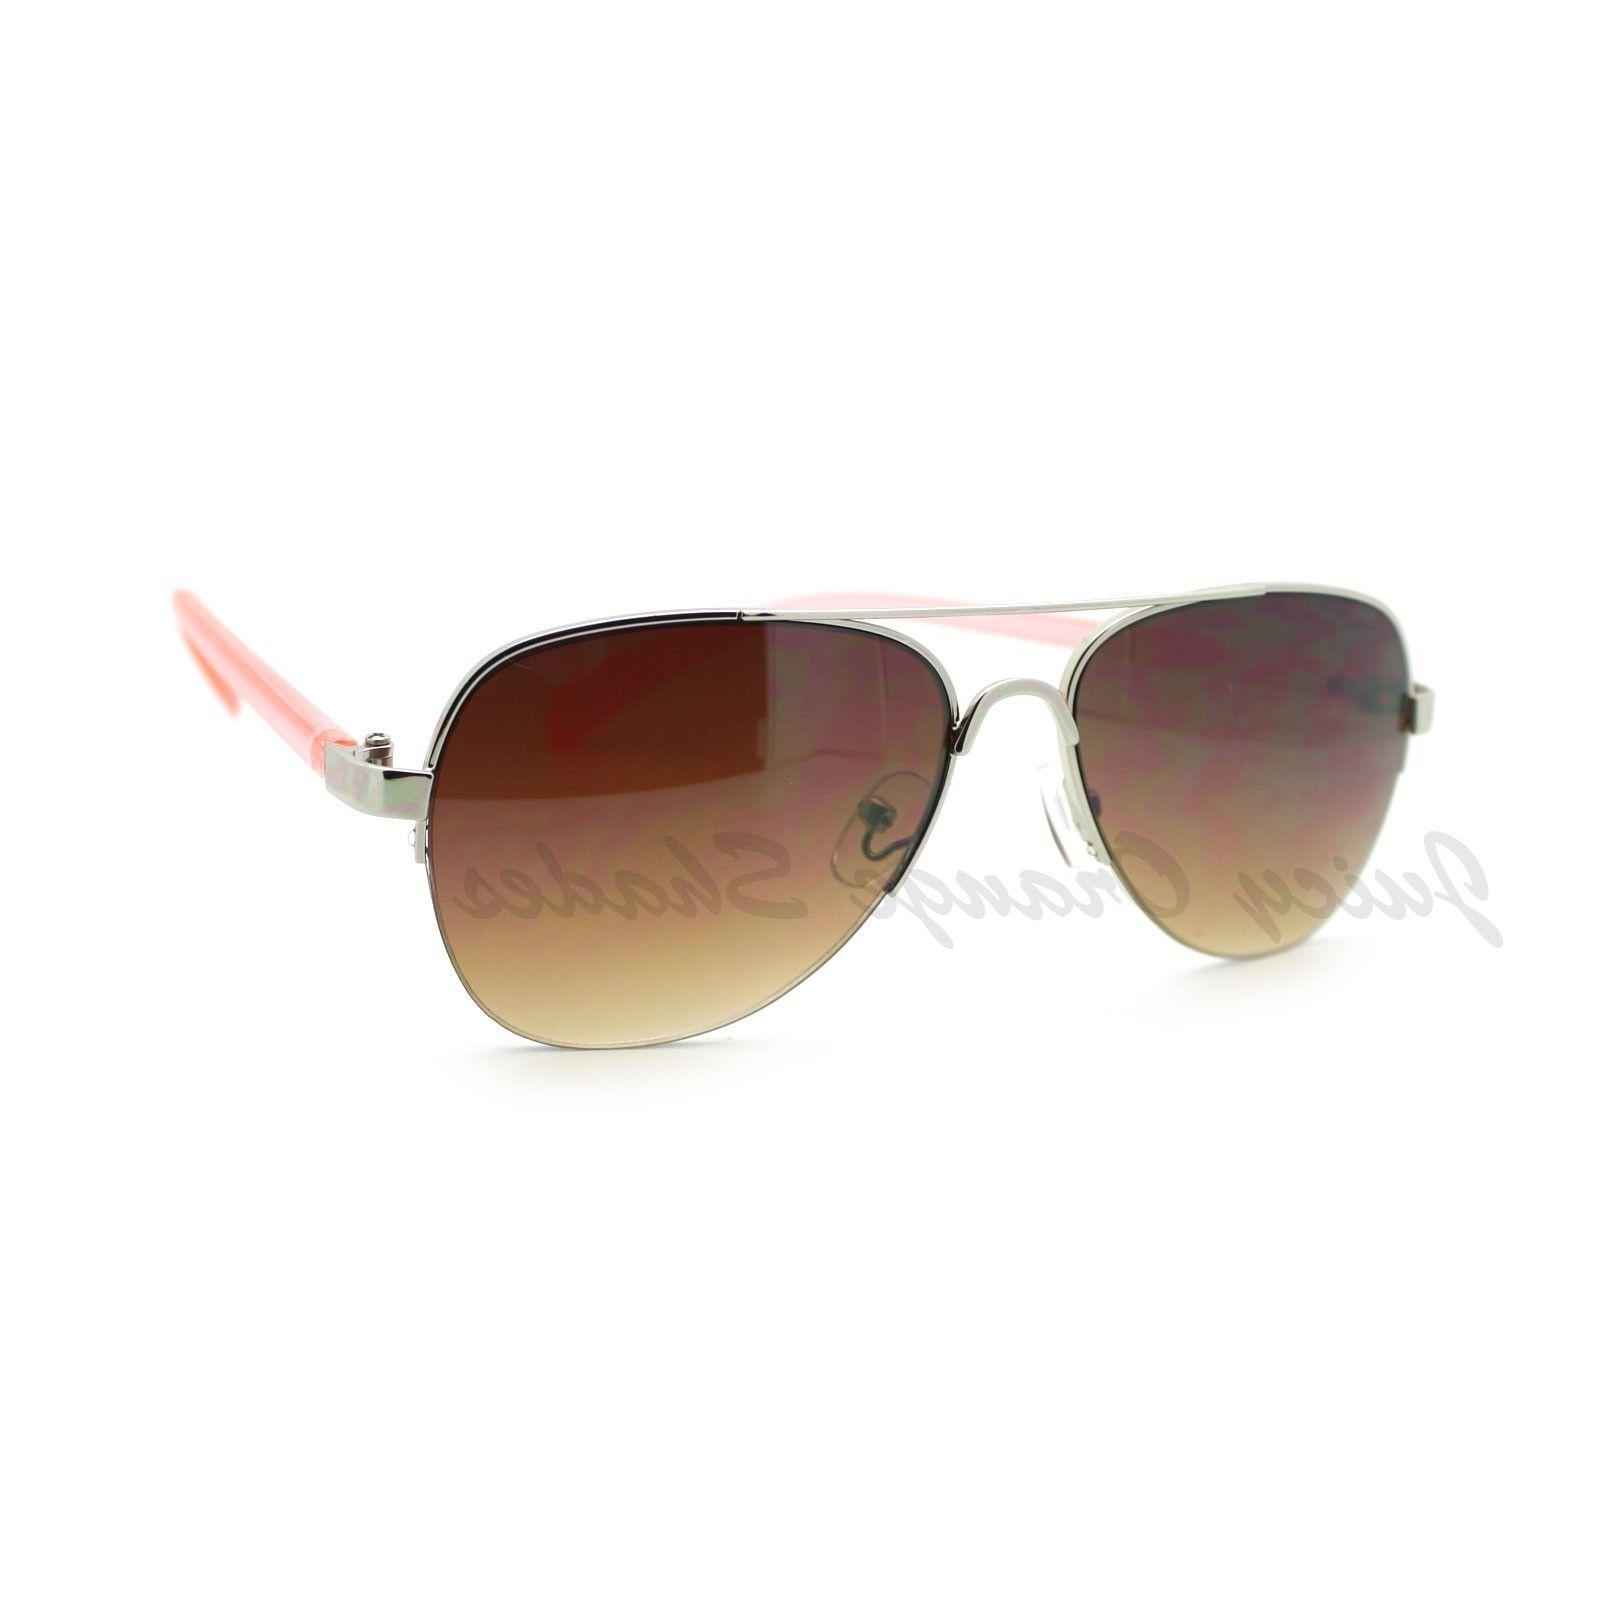 Women's Small Size Aviator Sunglasses Petite Half Rim Aviato